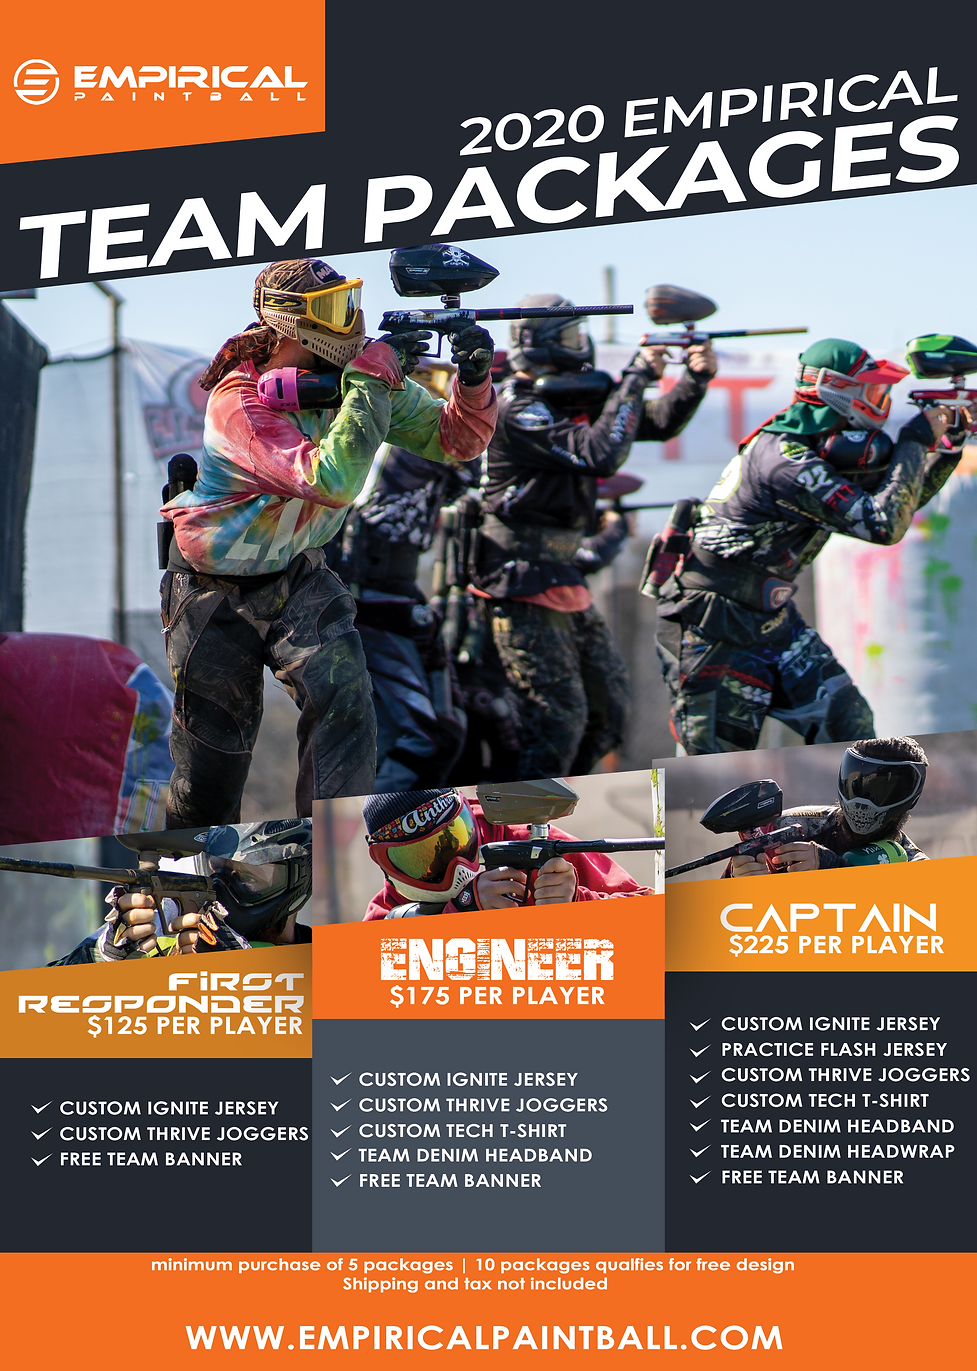 empirical team package Flyer.png